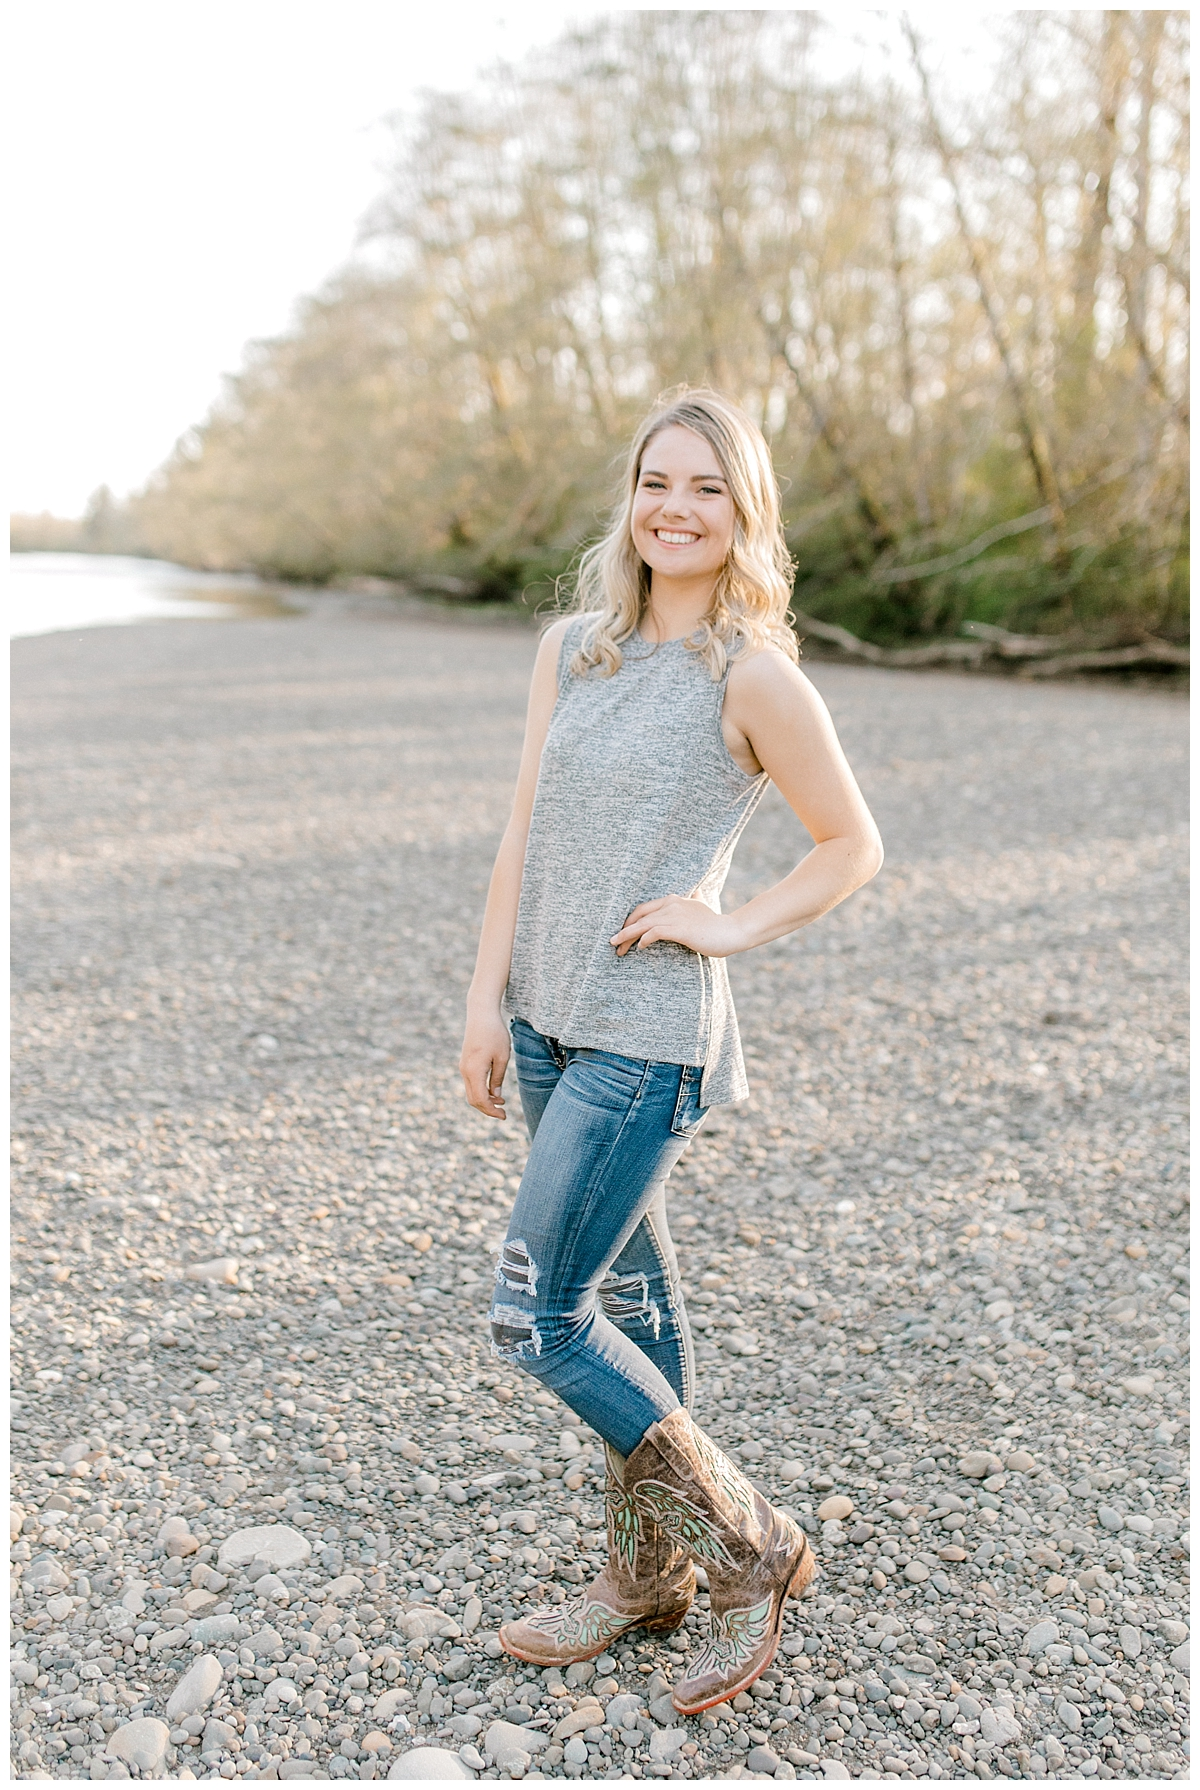 Sunset Senior Session with Horse | Senior Session Inspiration Session | Horse Photo Session | Pacific Northwest Light and Airy Wedding and Portrait Photographer | Emma Rose Company | Kindred Presets Posing Senior Session.jpg